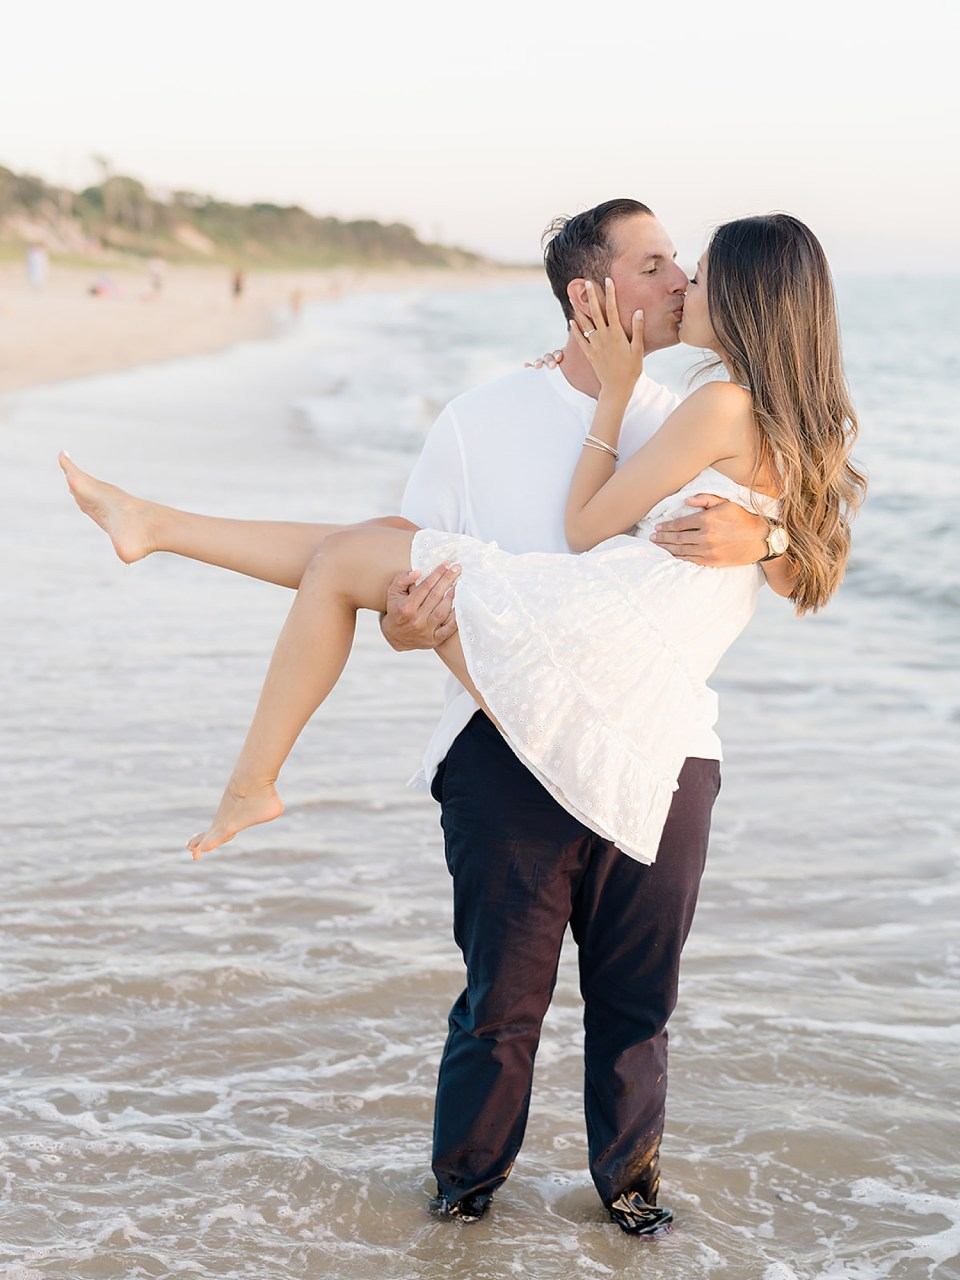 Willow Creek Winery New Jersey Engagement Photography by Magdalena Studios 0020